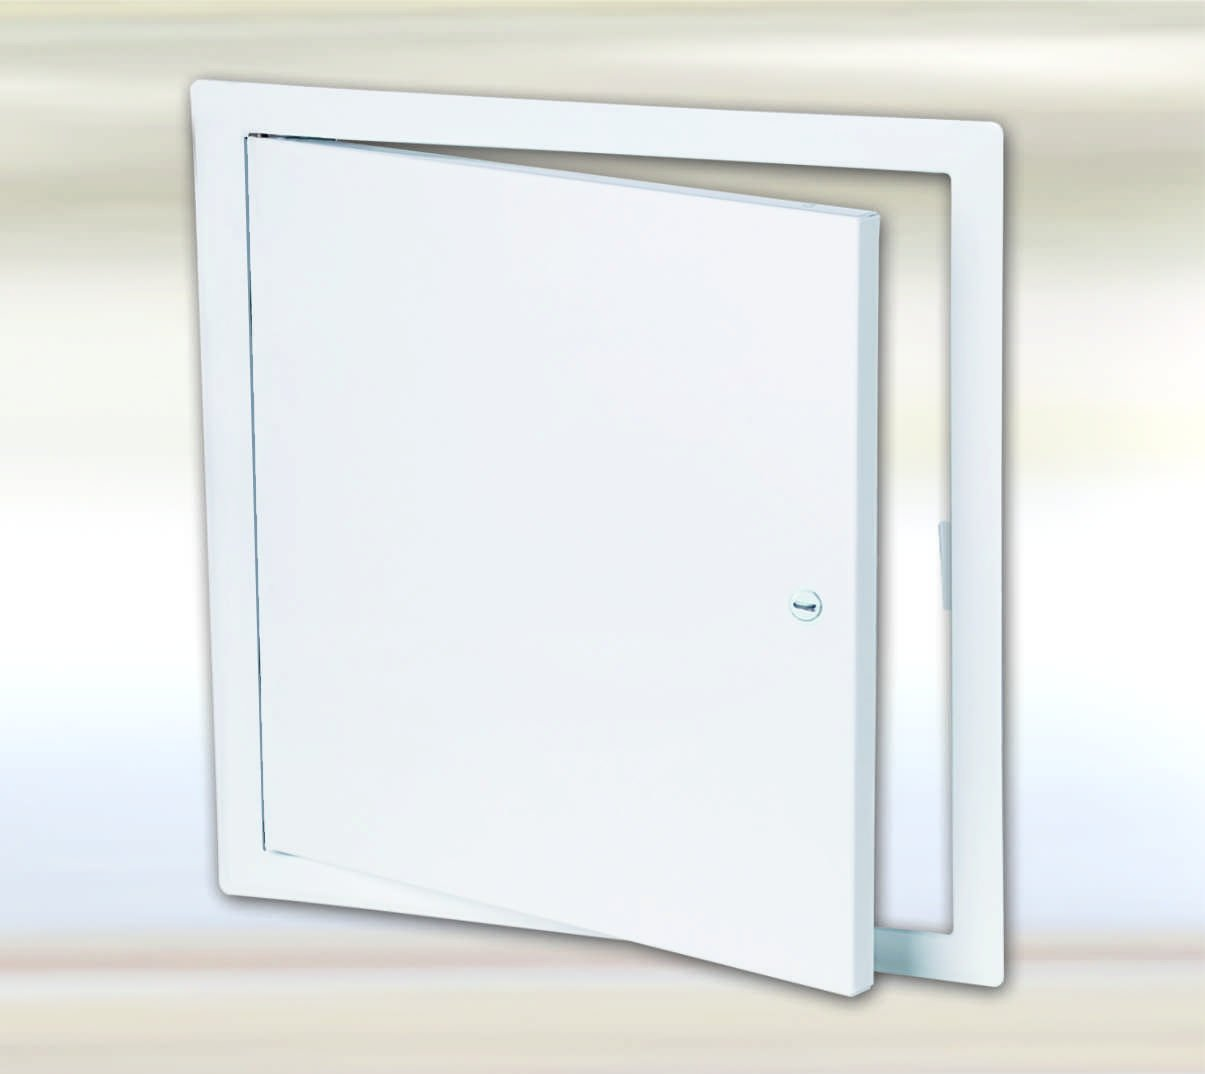 12 X 12 Multi Purpose Access Door, System B10, white, 14/16ga. metal